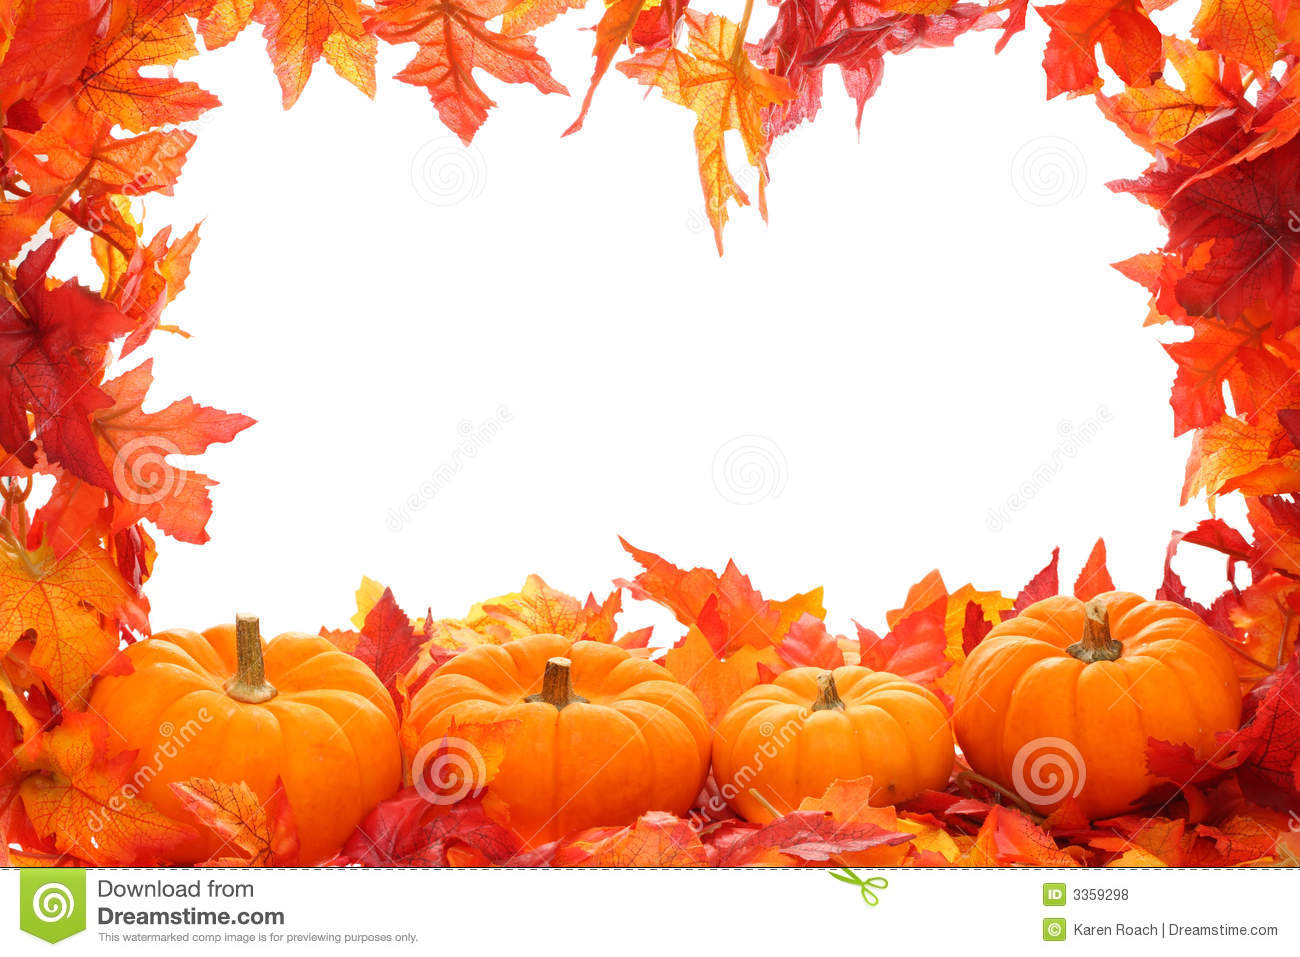 hight resolution of fall leaf border with pumpkins isolated on a white background